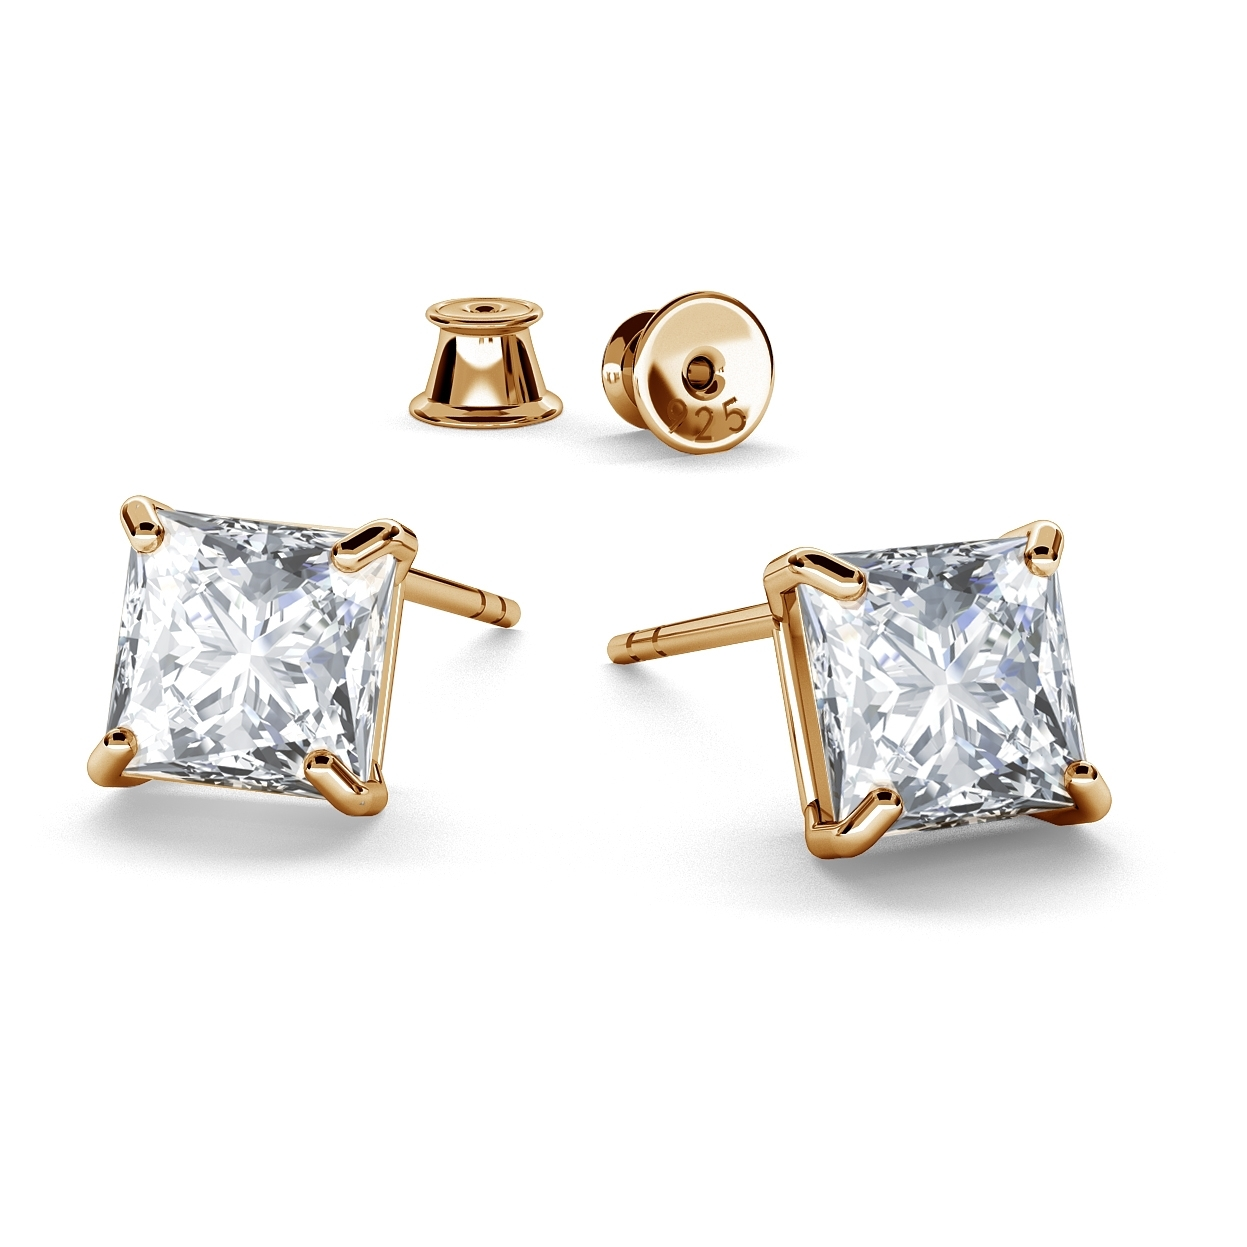 EARRINGS SWAROVSKI ZIRCONIA 6X6 MM, RHODIUM OR GOLD PLATED